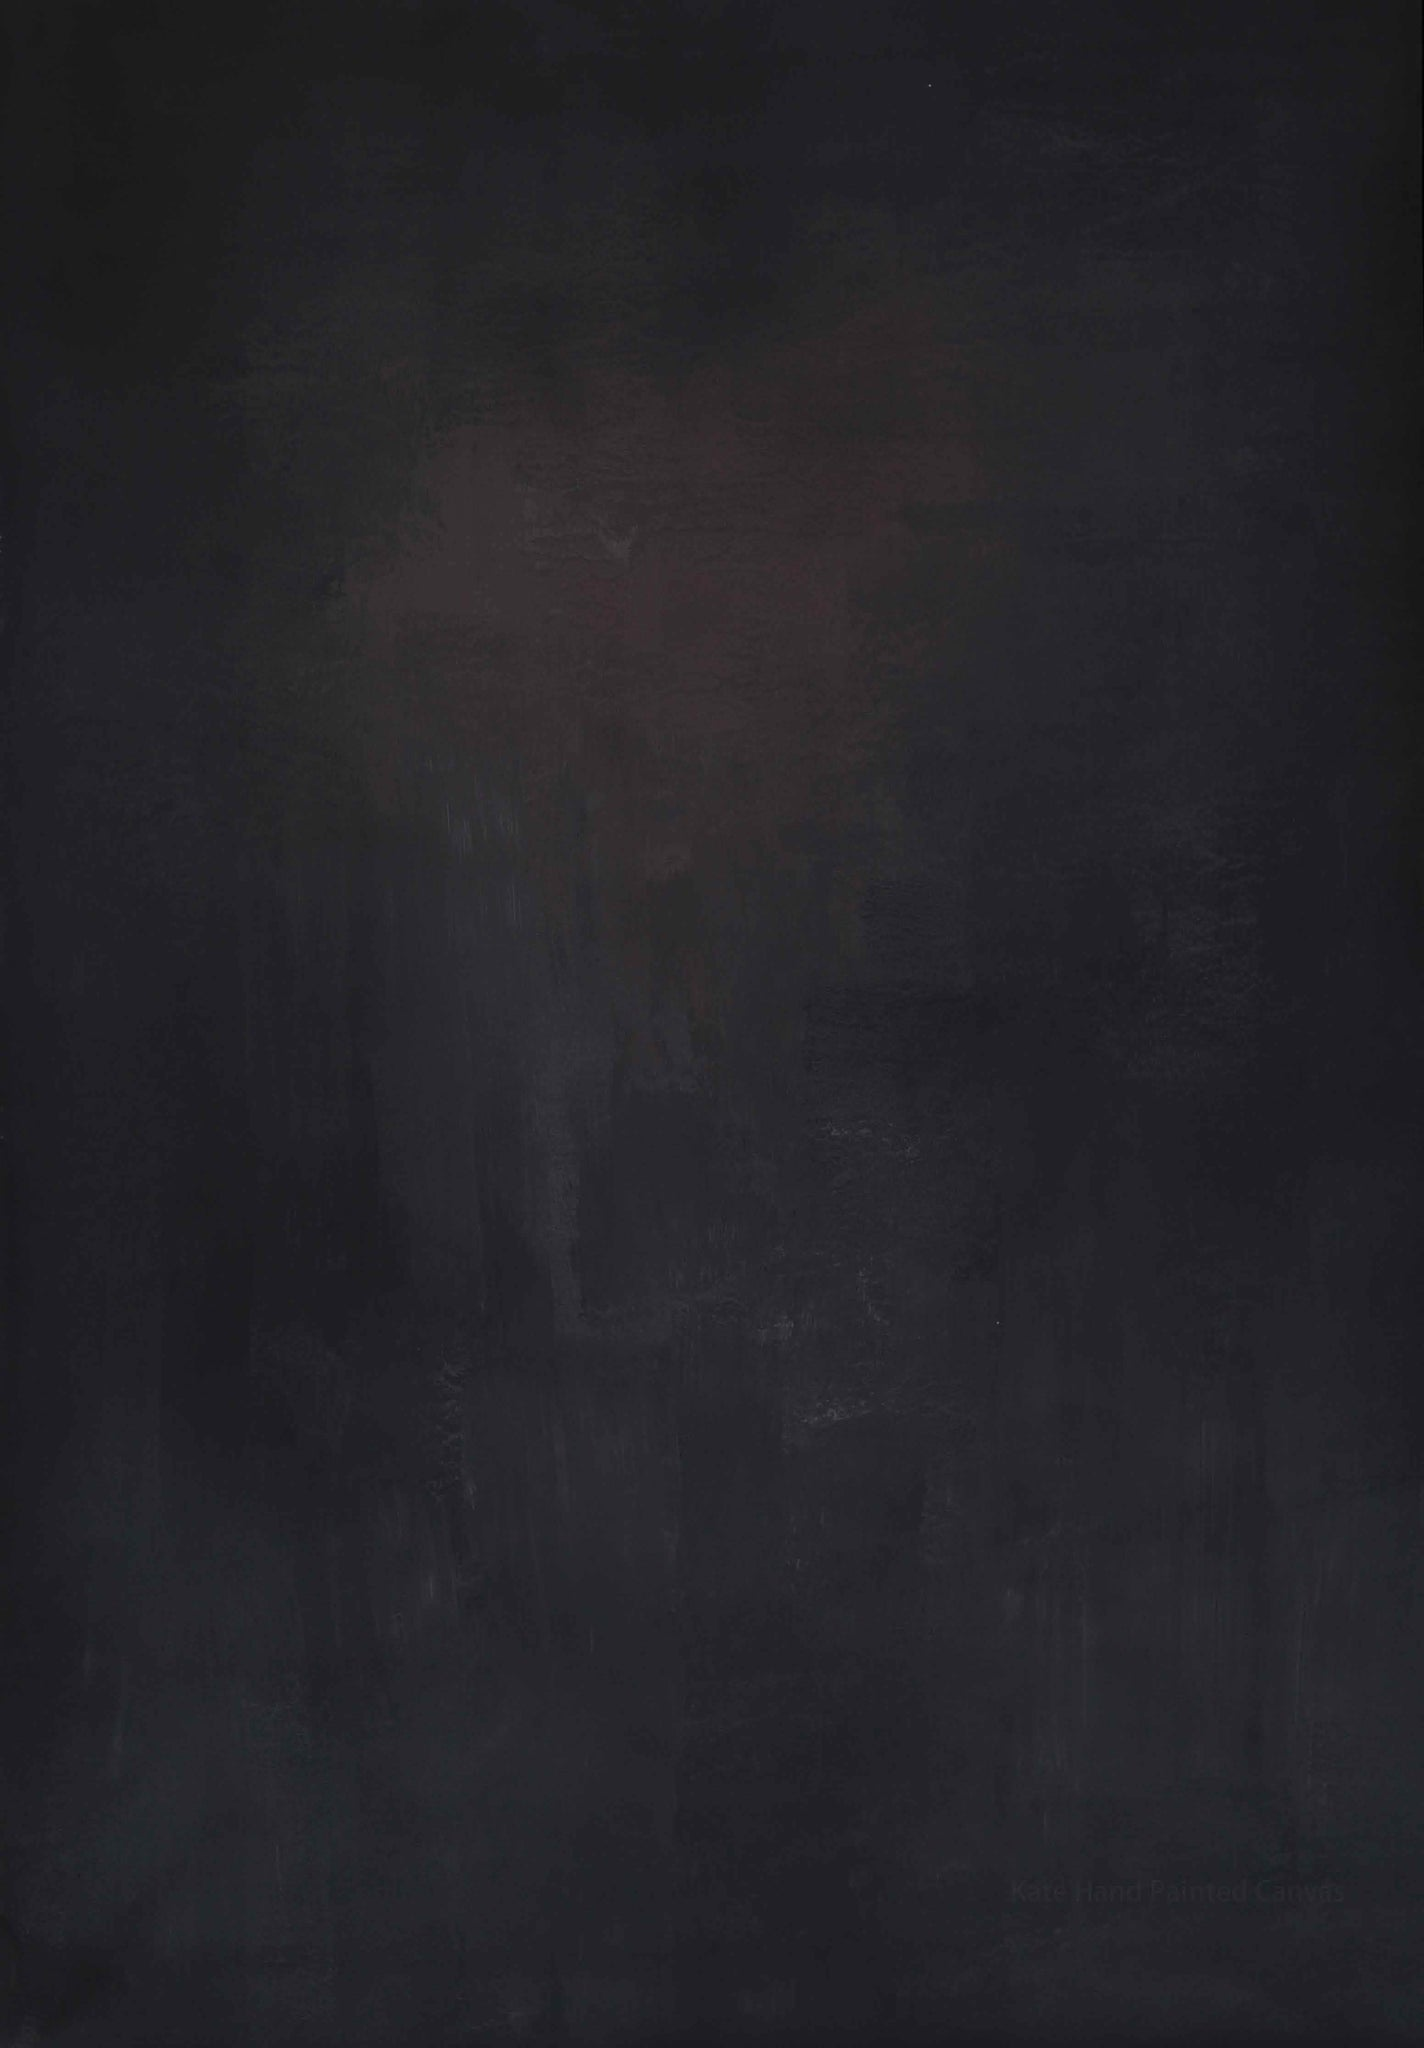 Load image into Gallery viewer, Katebackdrop£ºKate Abstract Texture Black Hand Painted Backdrop